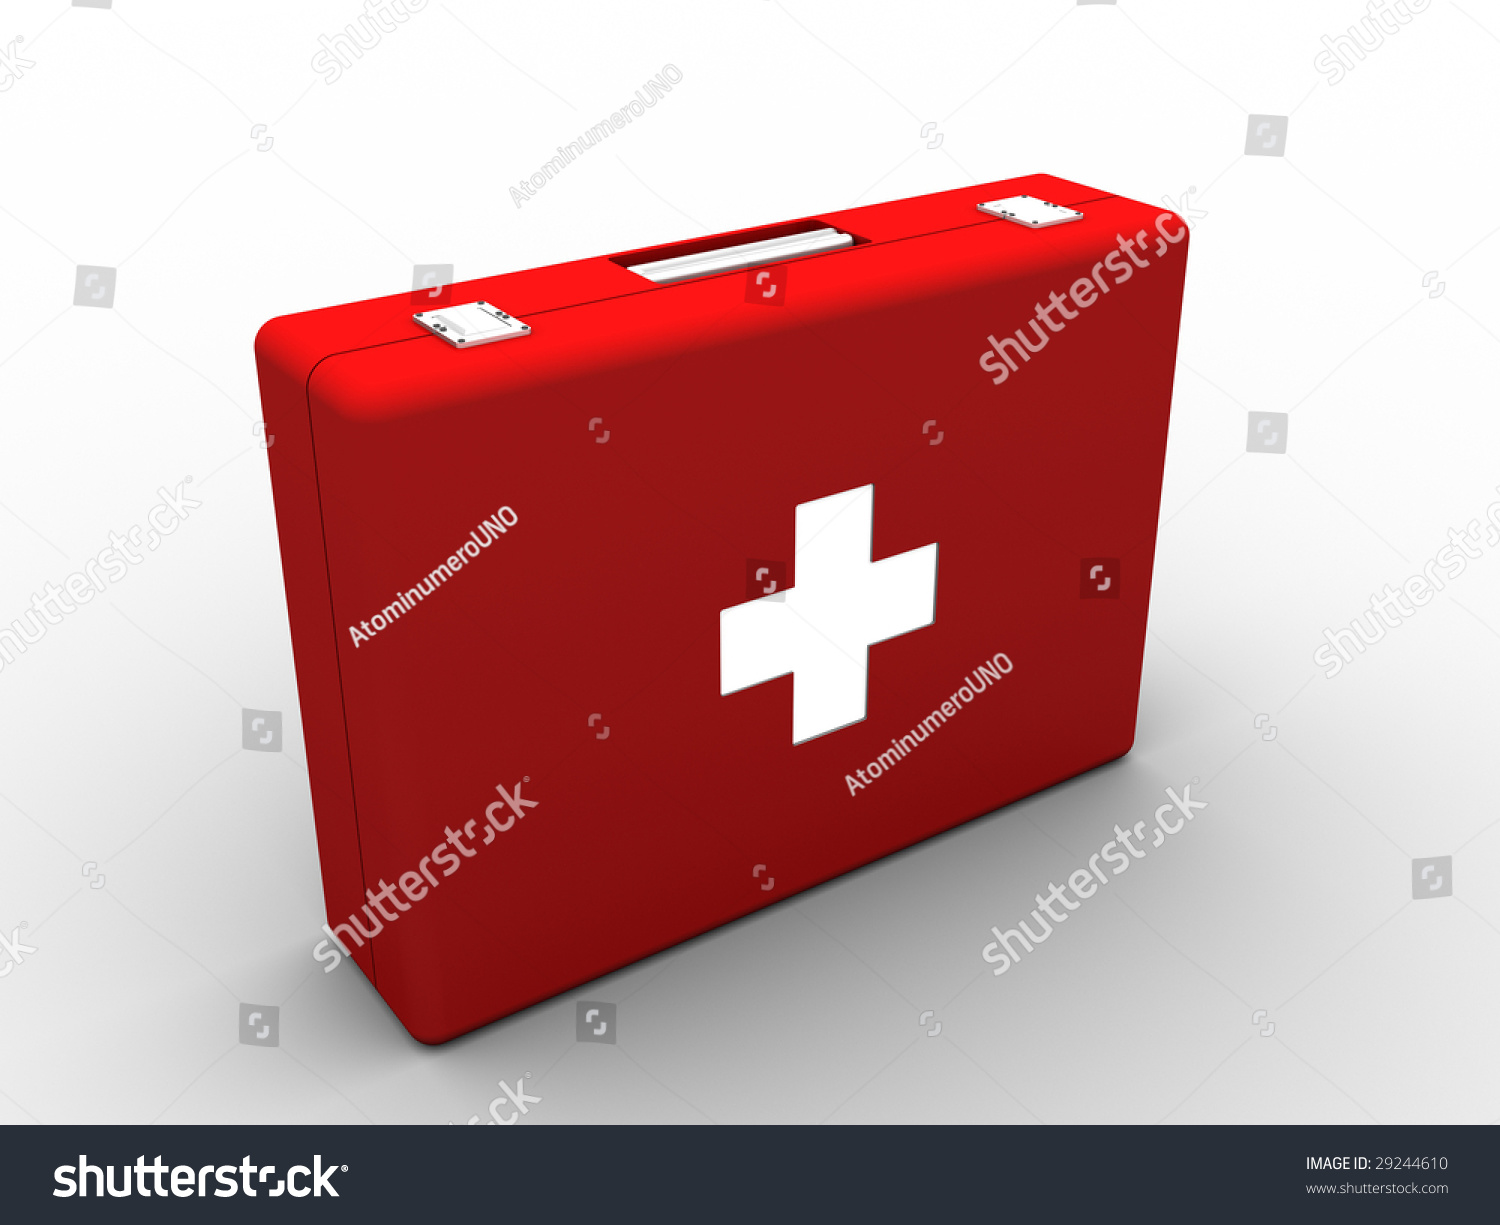 red medical background - photo #31